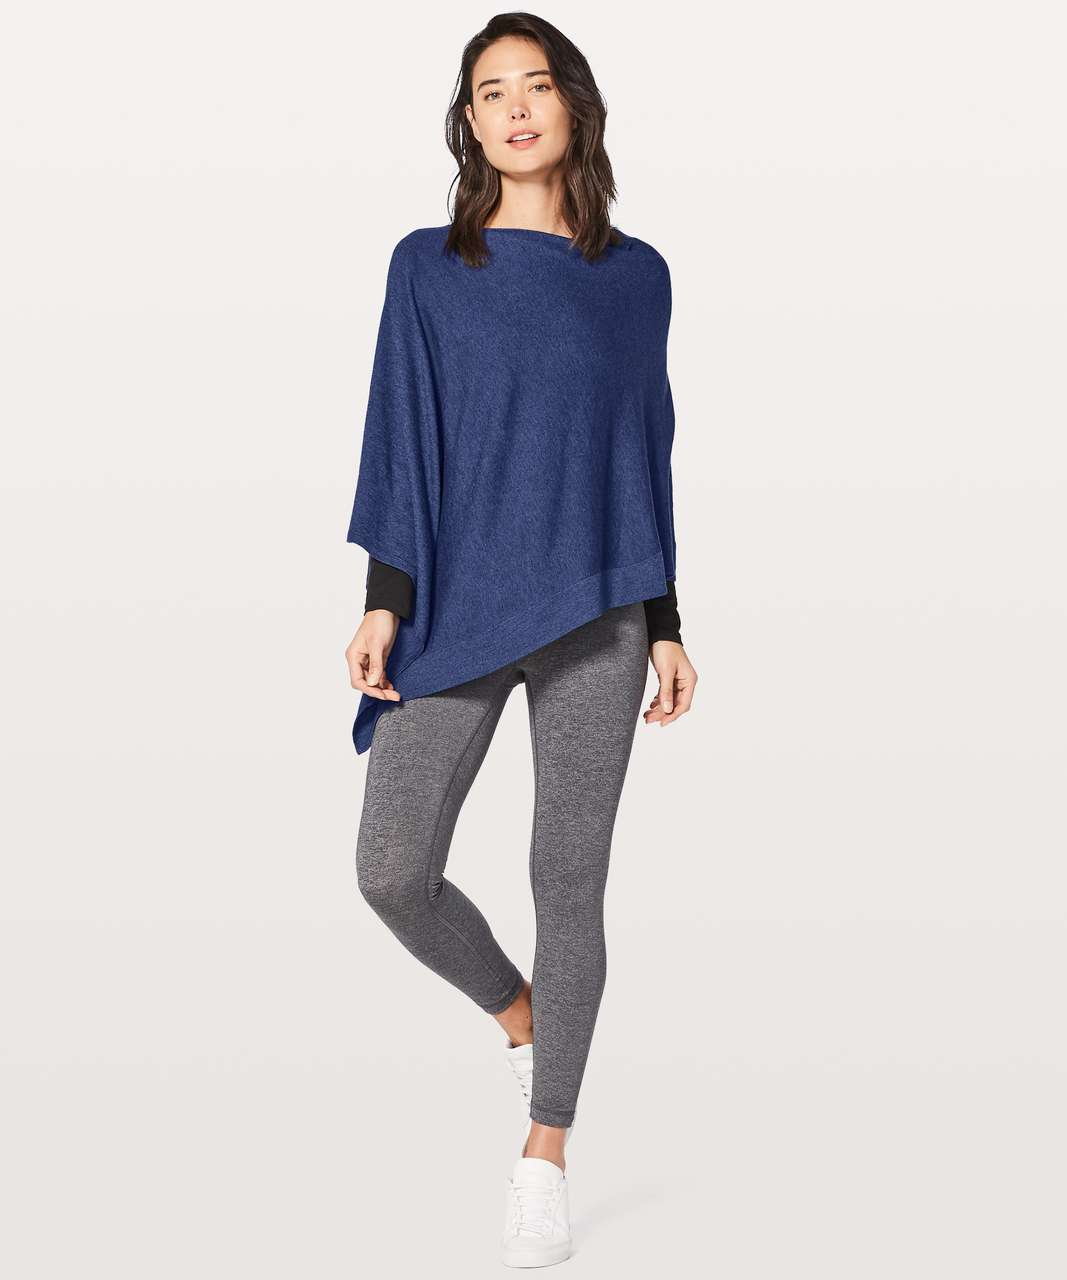 Lululemon Yin Poncho - Midnight Navy